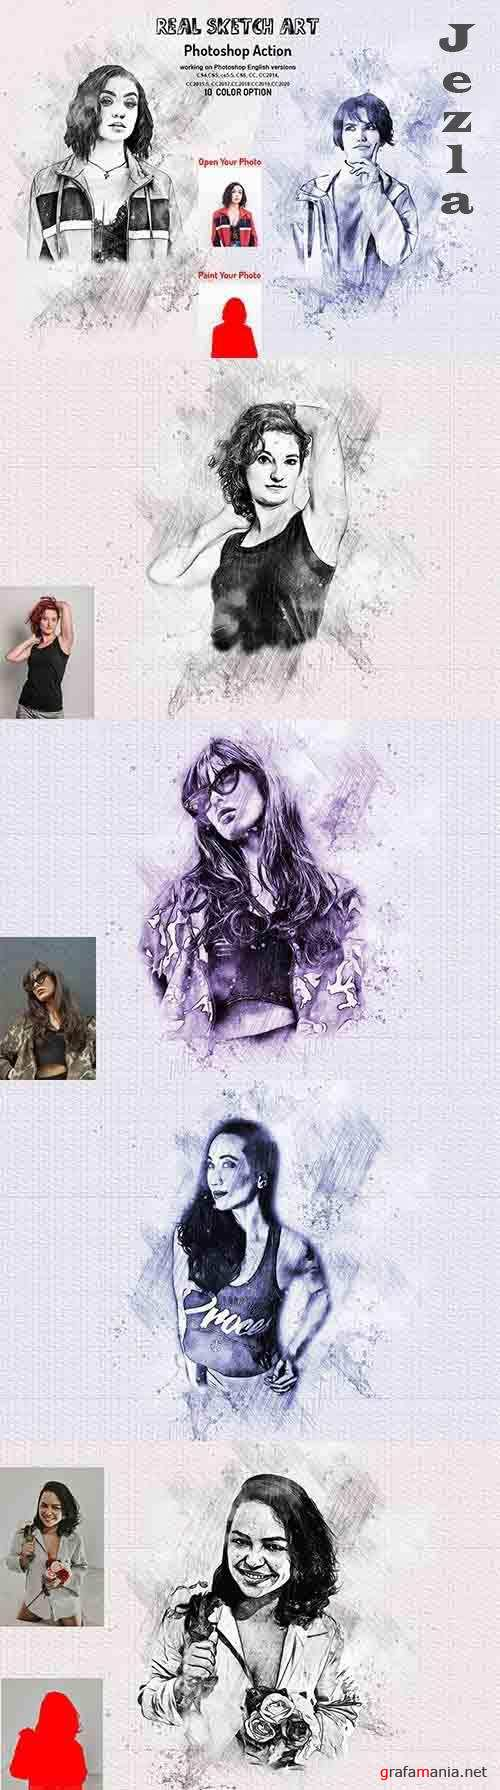 CreativeMarket - Real Sketch Art Photoshop Action 5990338